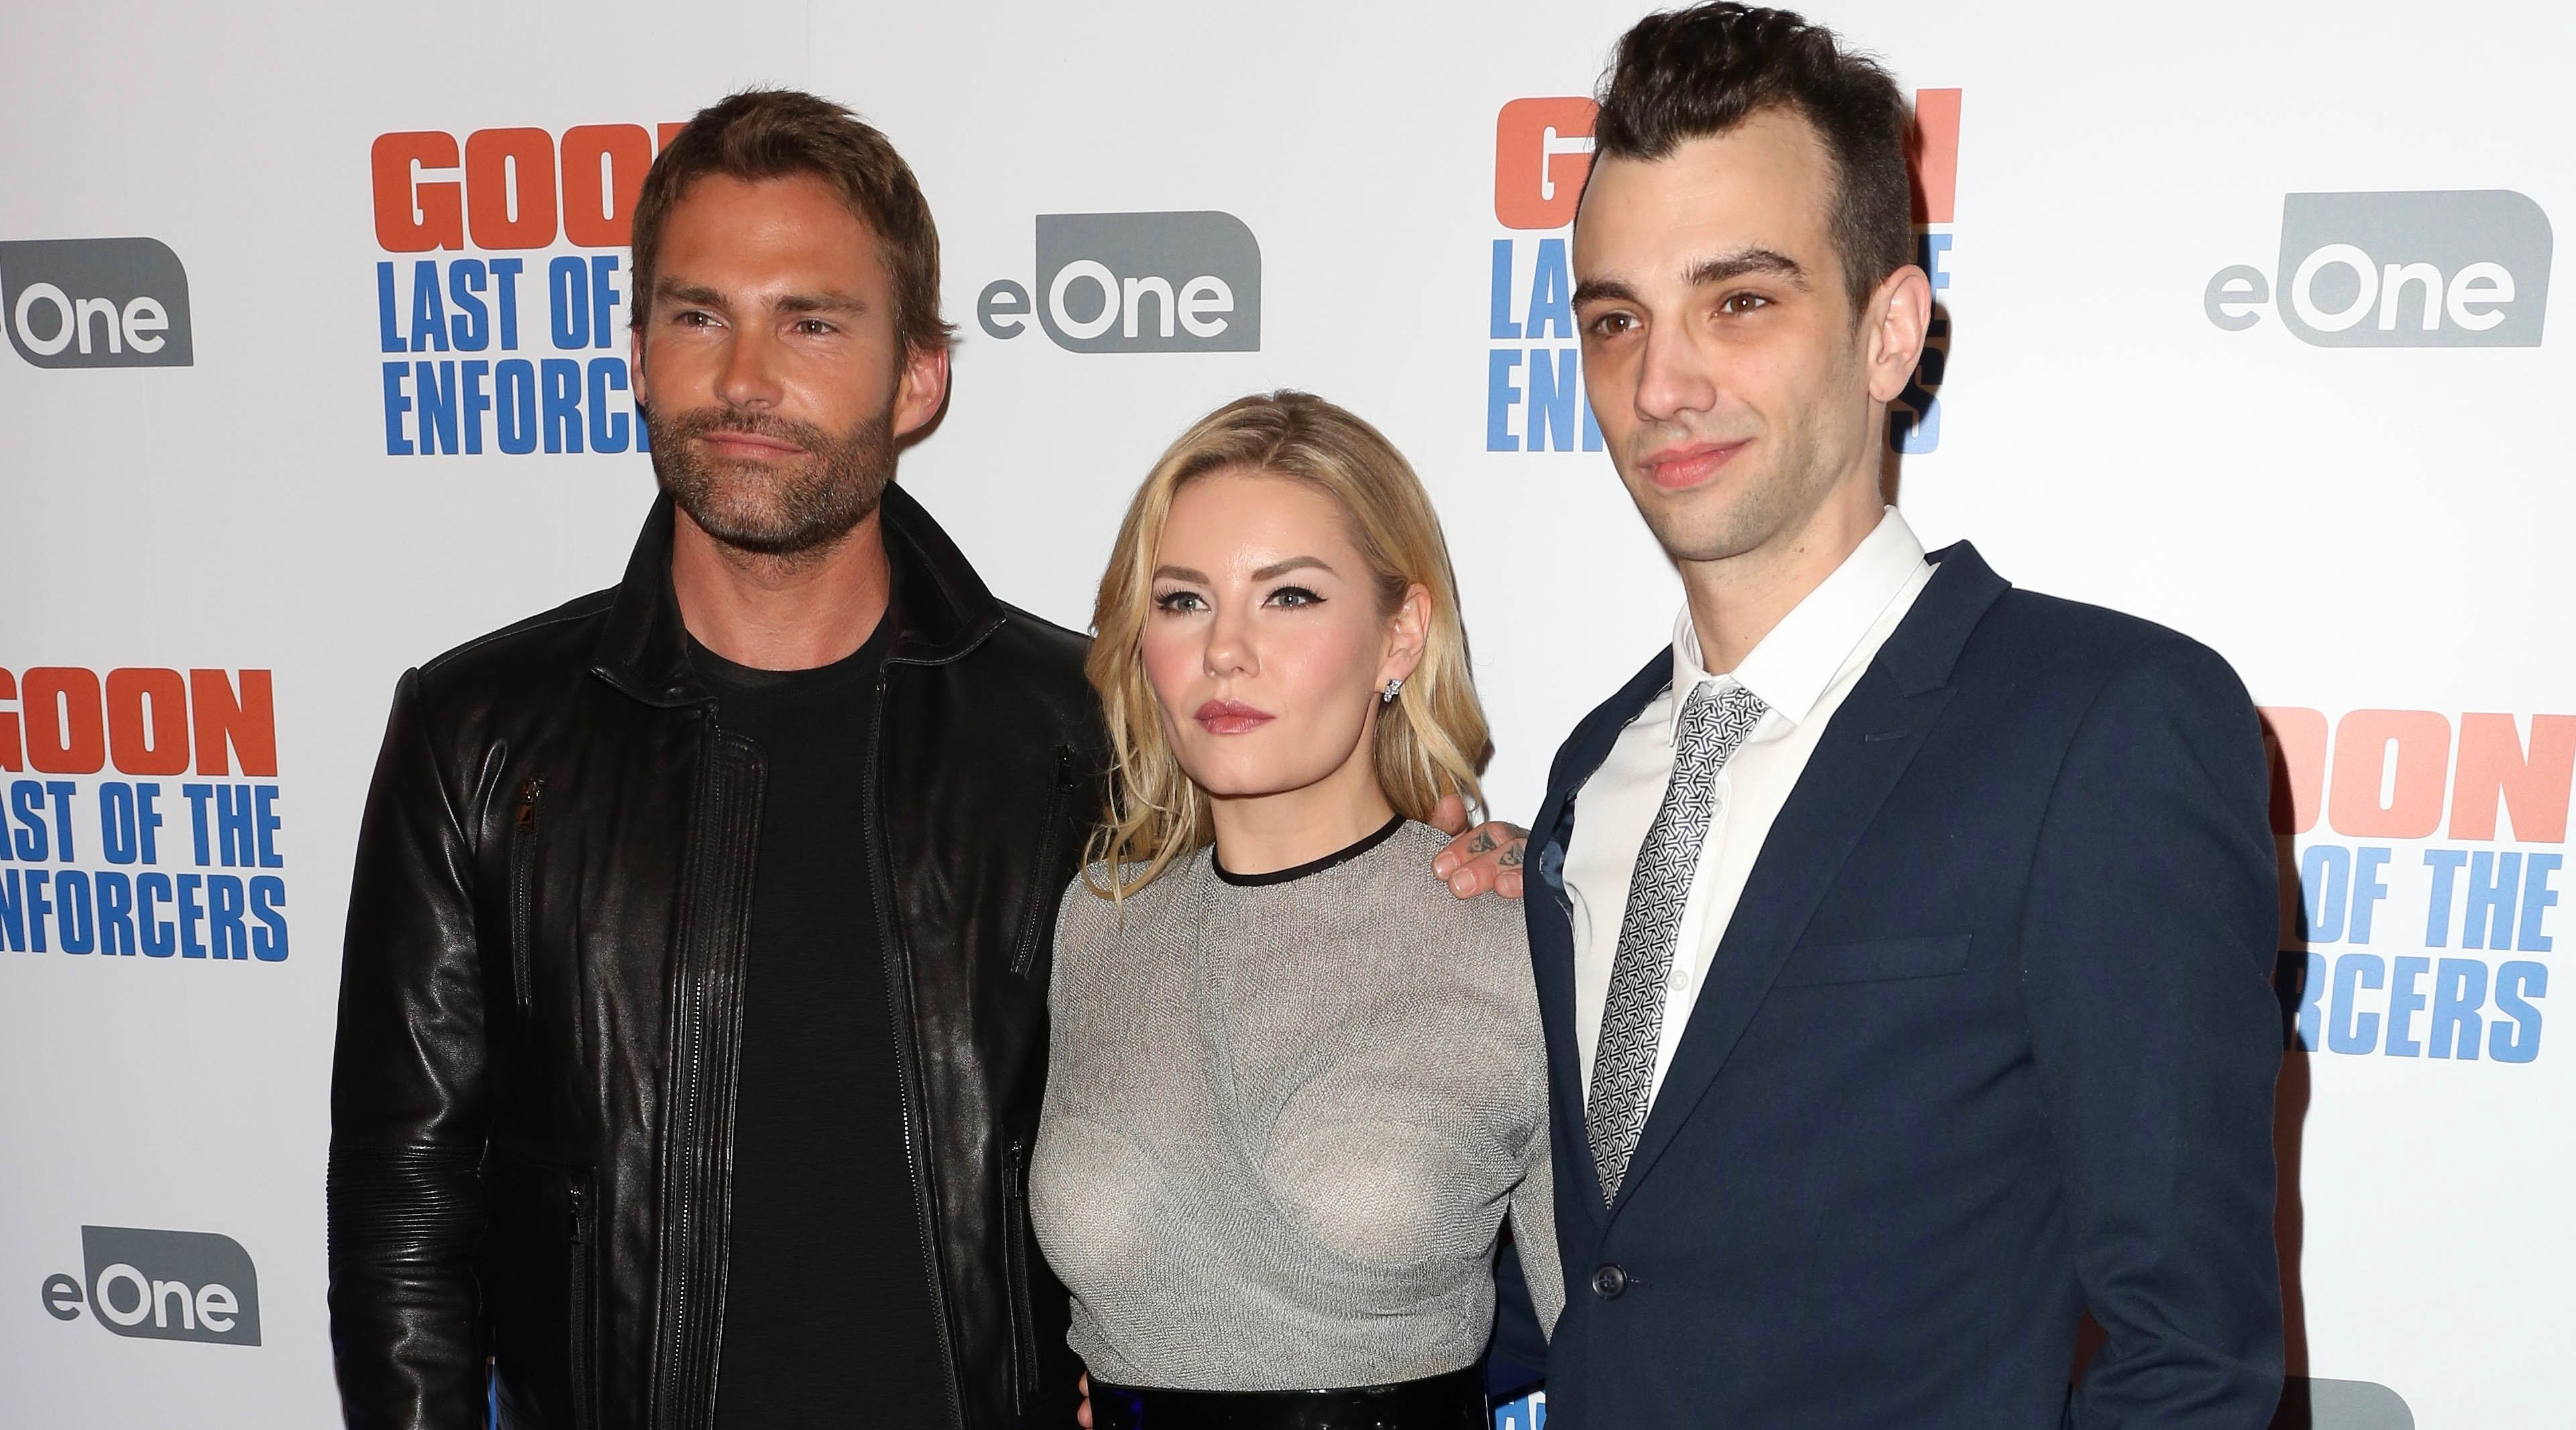 Stars turn out for world premiere of 'Goon: Last of the Enforcers' in Toronto (PHOTOS)